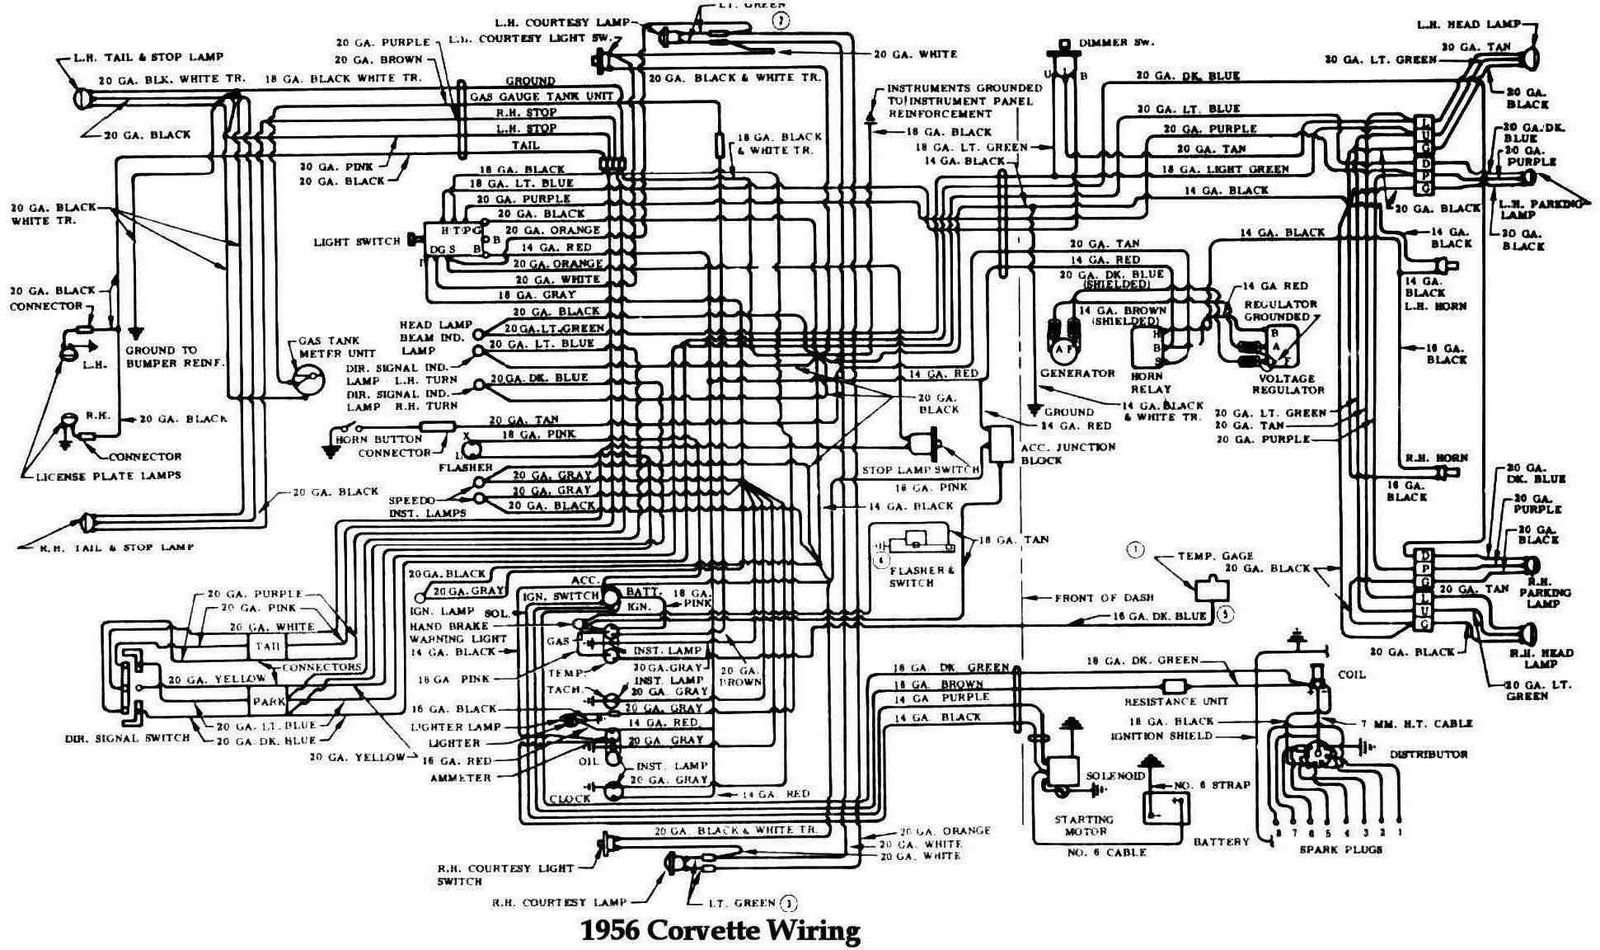 65 Vette Wiring Diagram Auto Electrical Diagrams Of 1964 Chevrolet Corvair Greenbrier Corvette 1956